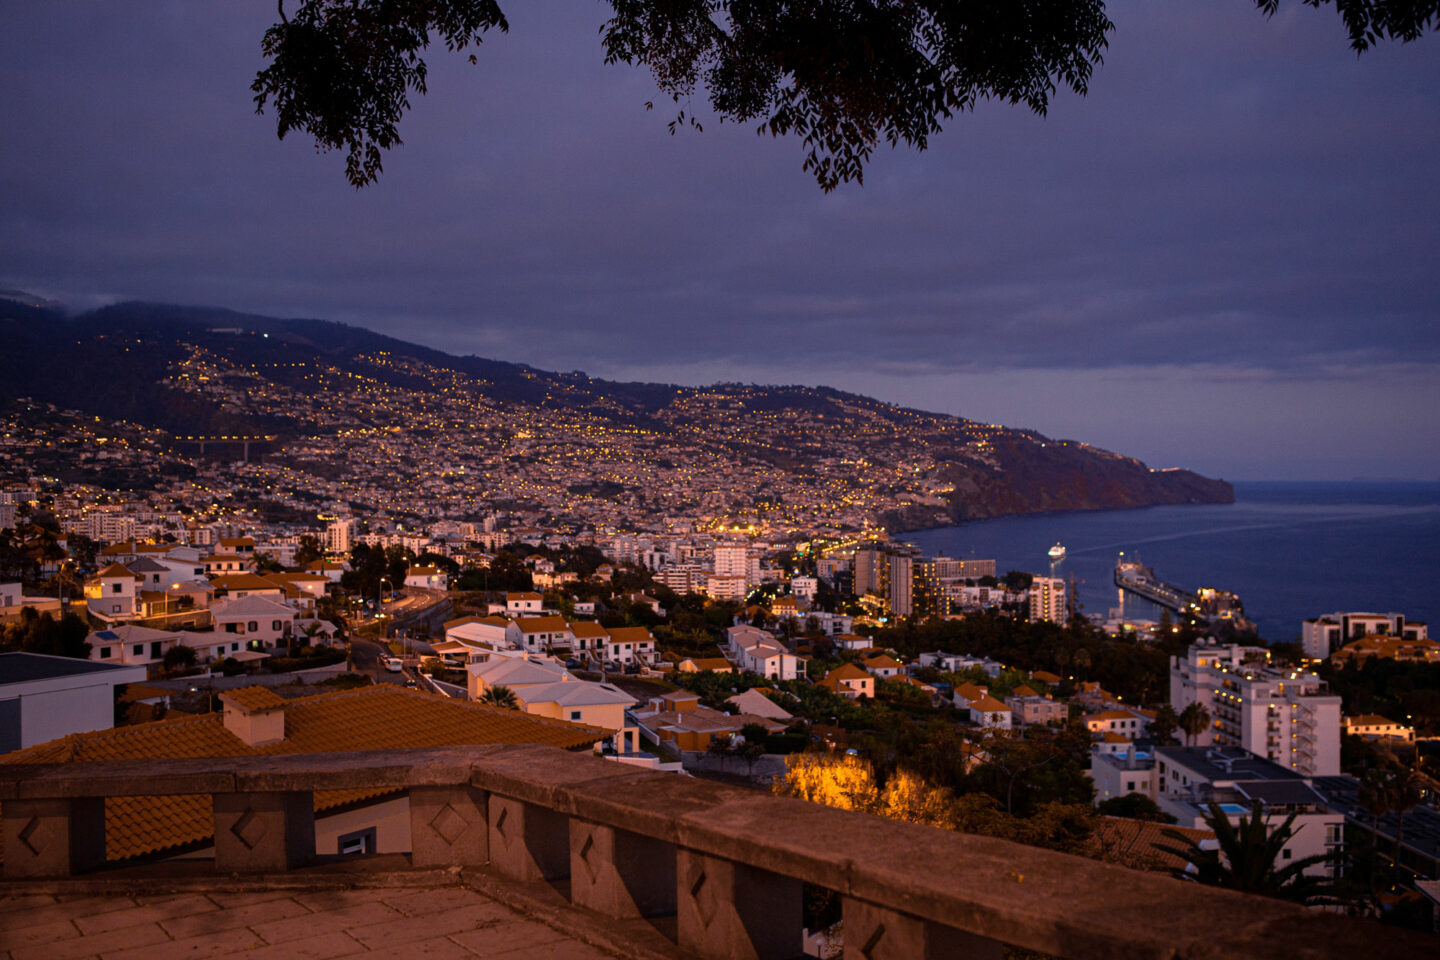 20-Top-things-to-do-in-madeira-Bucket-list--Instagram-Story-Template--kelseyinlondon-Kelsey-Heinrichs--What-to-do-in-madeira--Where-to-go-in-madeira-top-places-in-madeira-